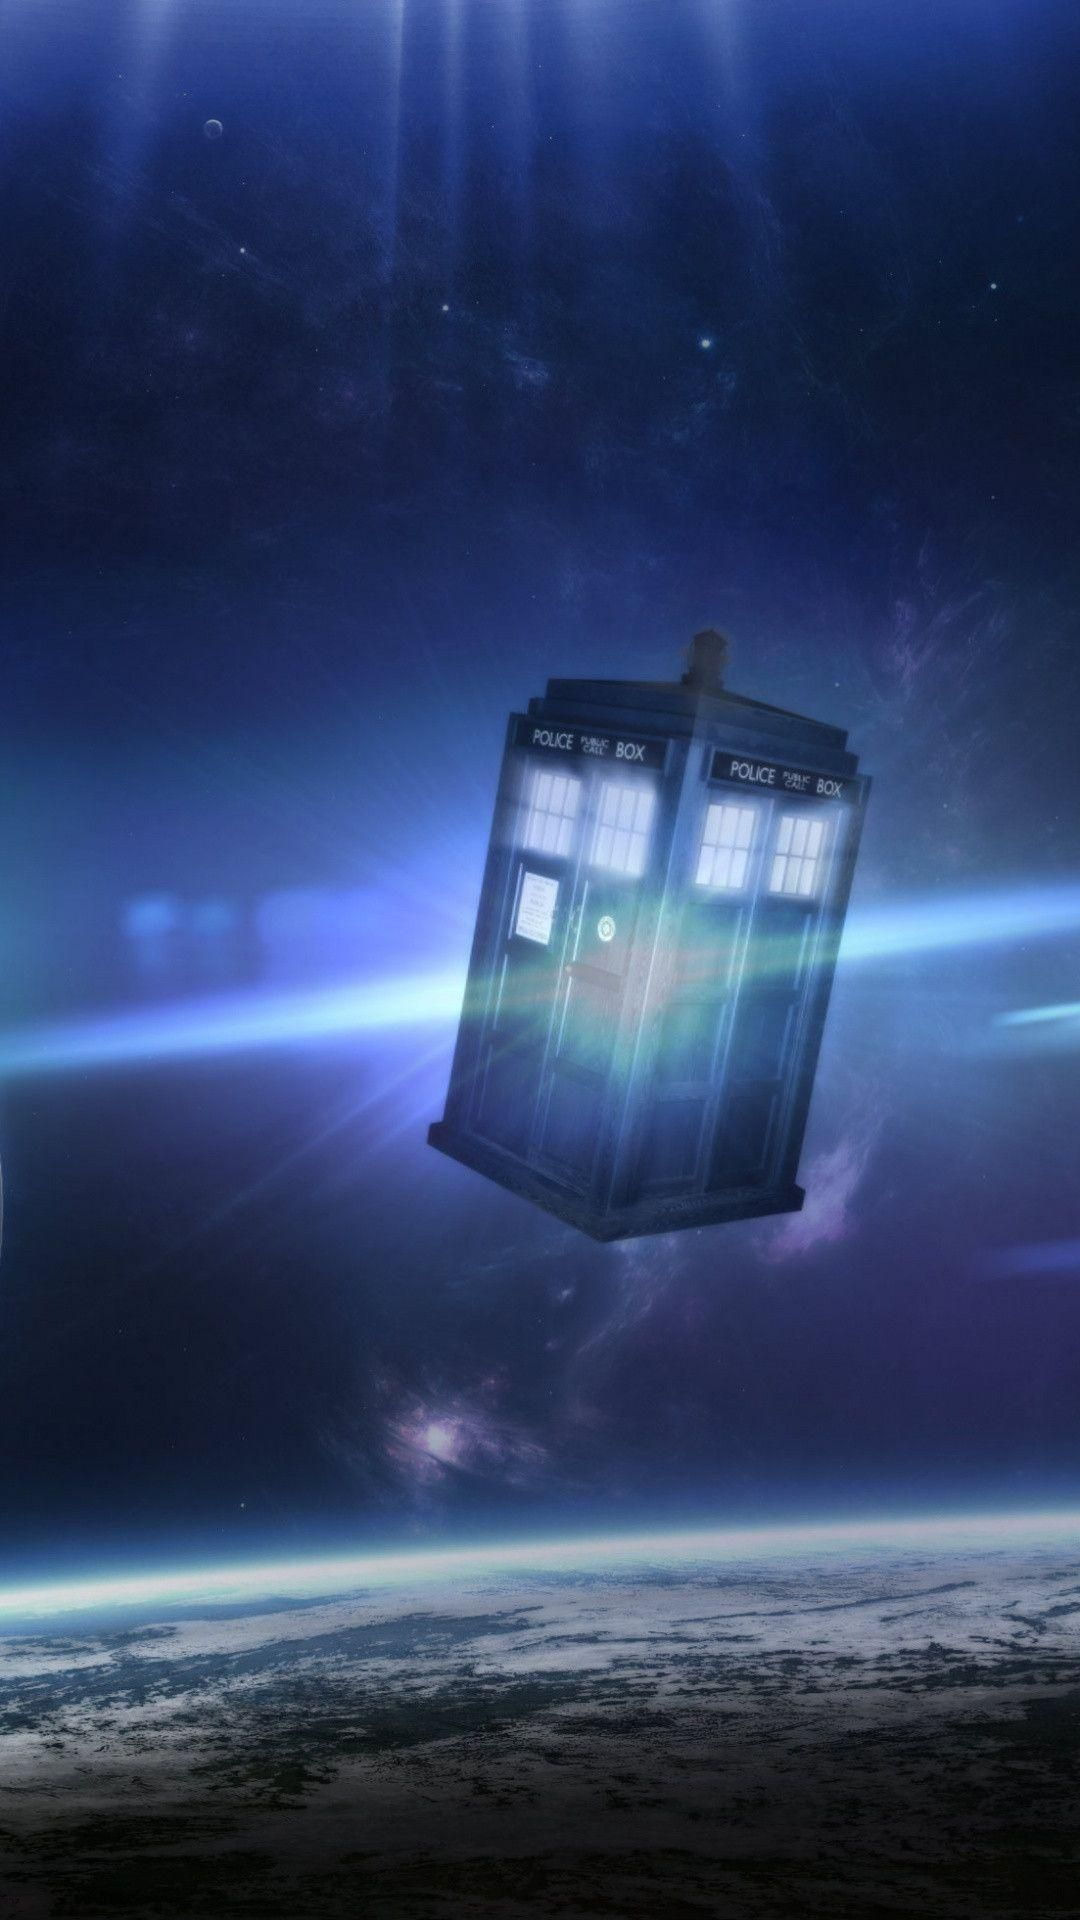 Doctor Who All Doctors Doctor Who All Doctors Iphone In 2020 Dr Who Wallpaper Tardis Doctor Who Wallpaper